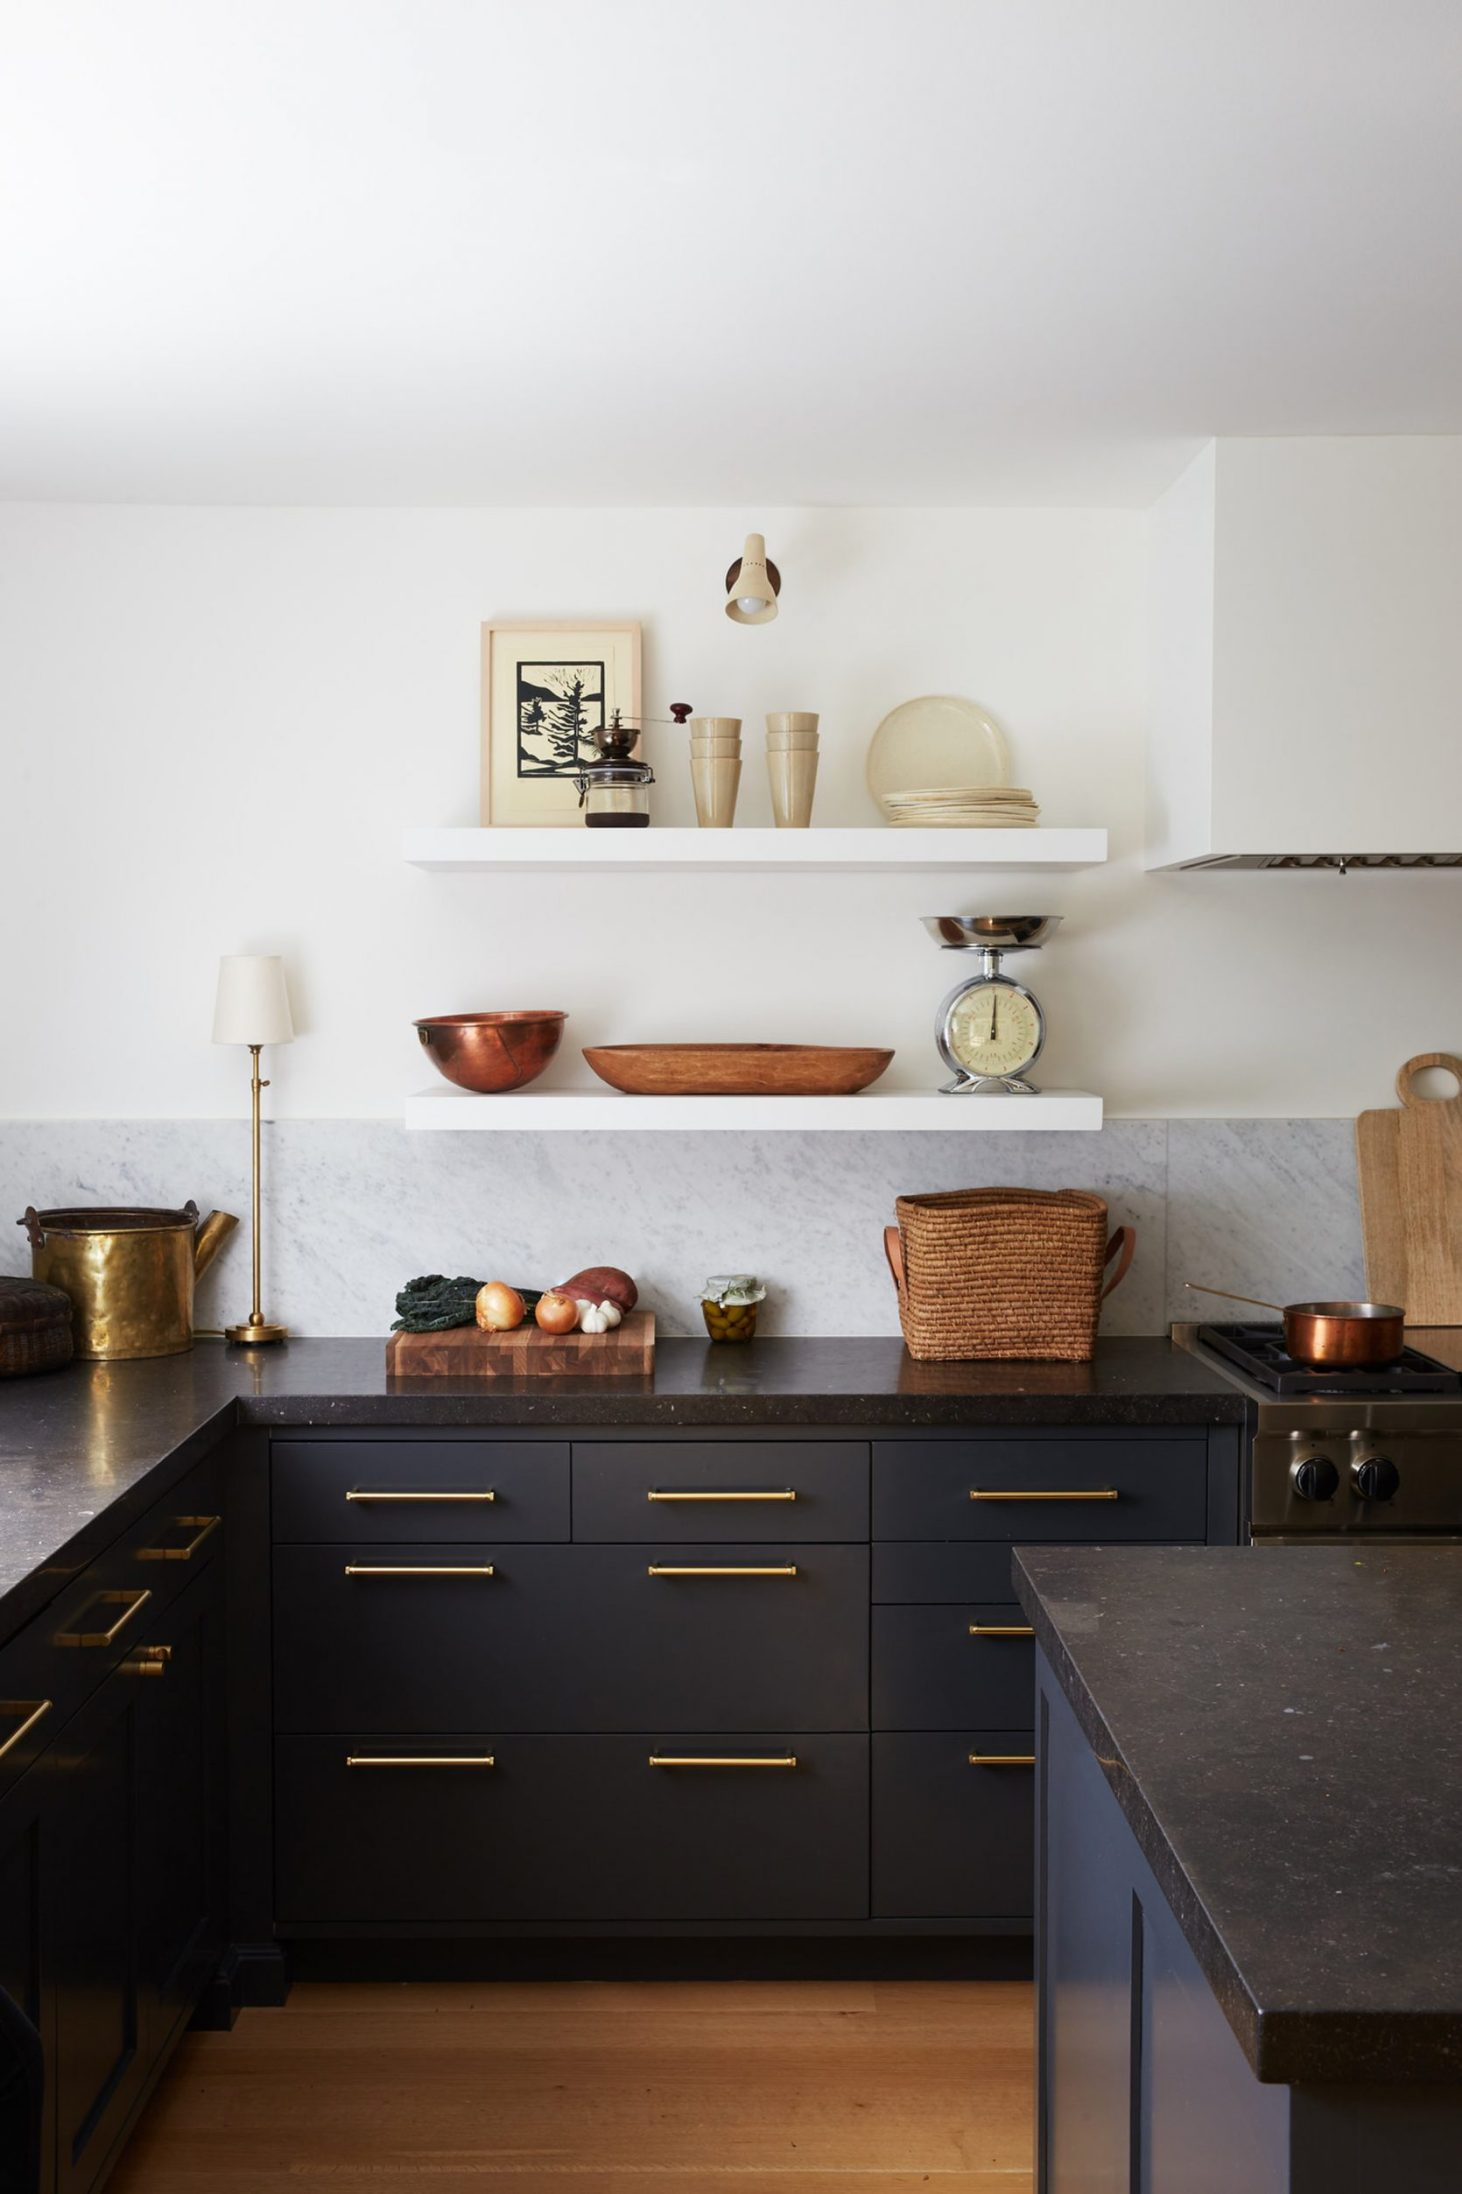 2019 Home Decor Trends We're Loving - One of the things that we absolutely love about real estate is that we are exposed to home decor trends! Here are 5 of the home decor trends we've been loving in 2019.